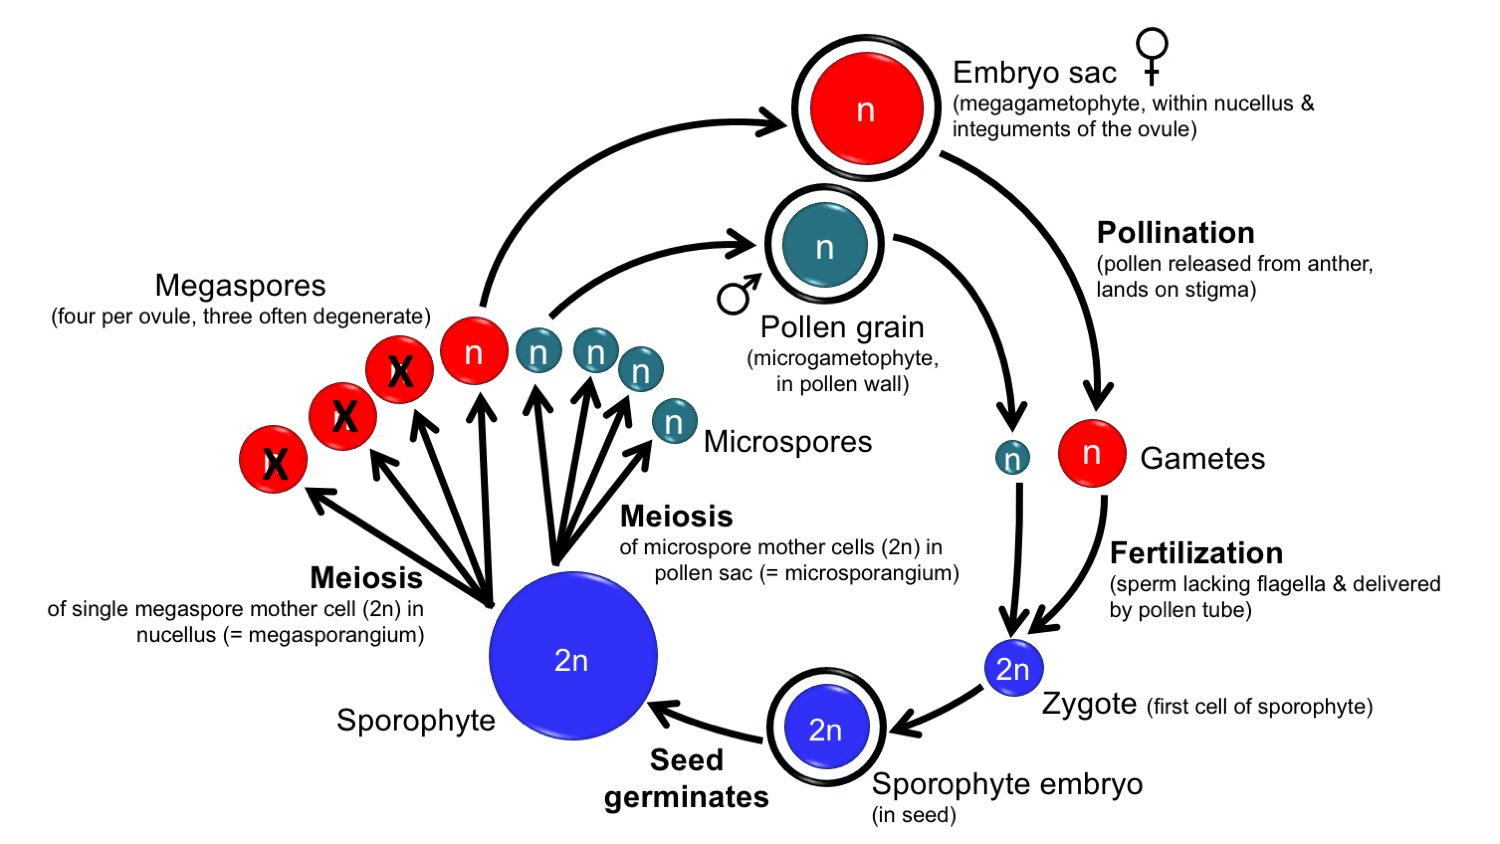 Diagram showing the steps in the angiosperm life cycle